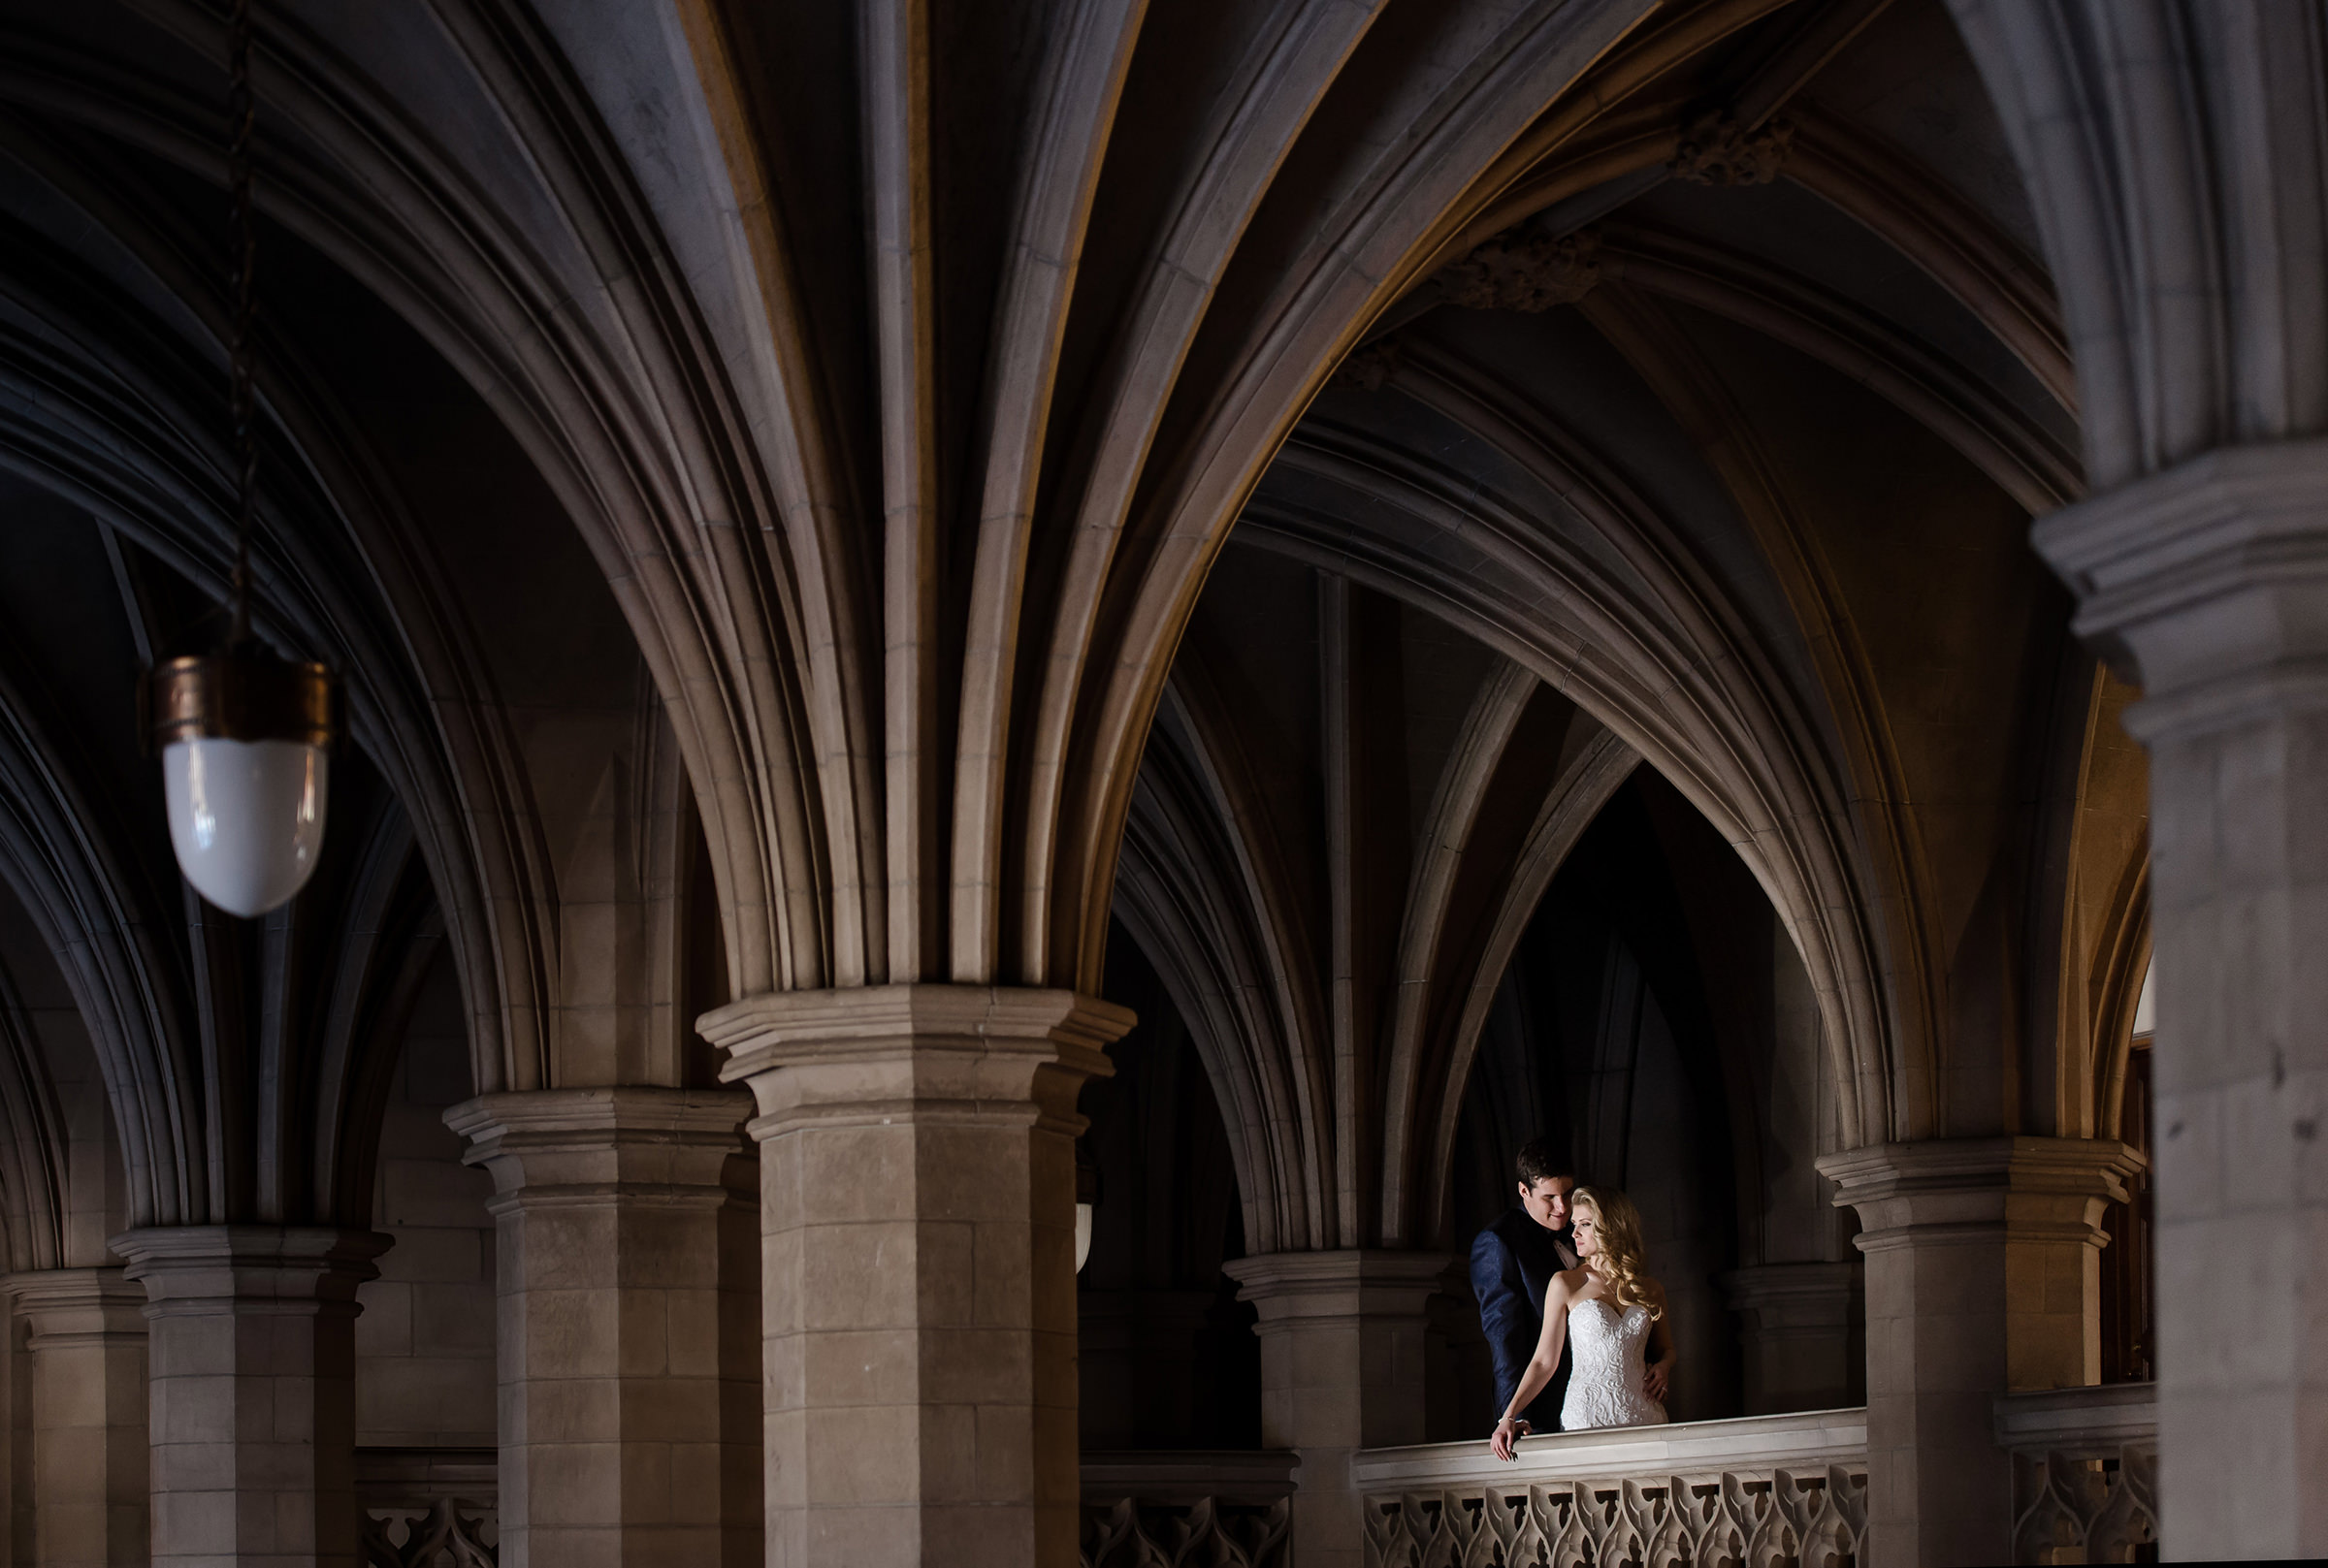 Couple against interior gothic architecture - photo by David & Sherry Photography